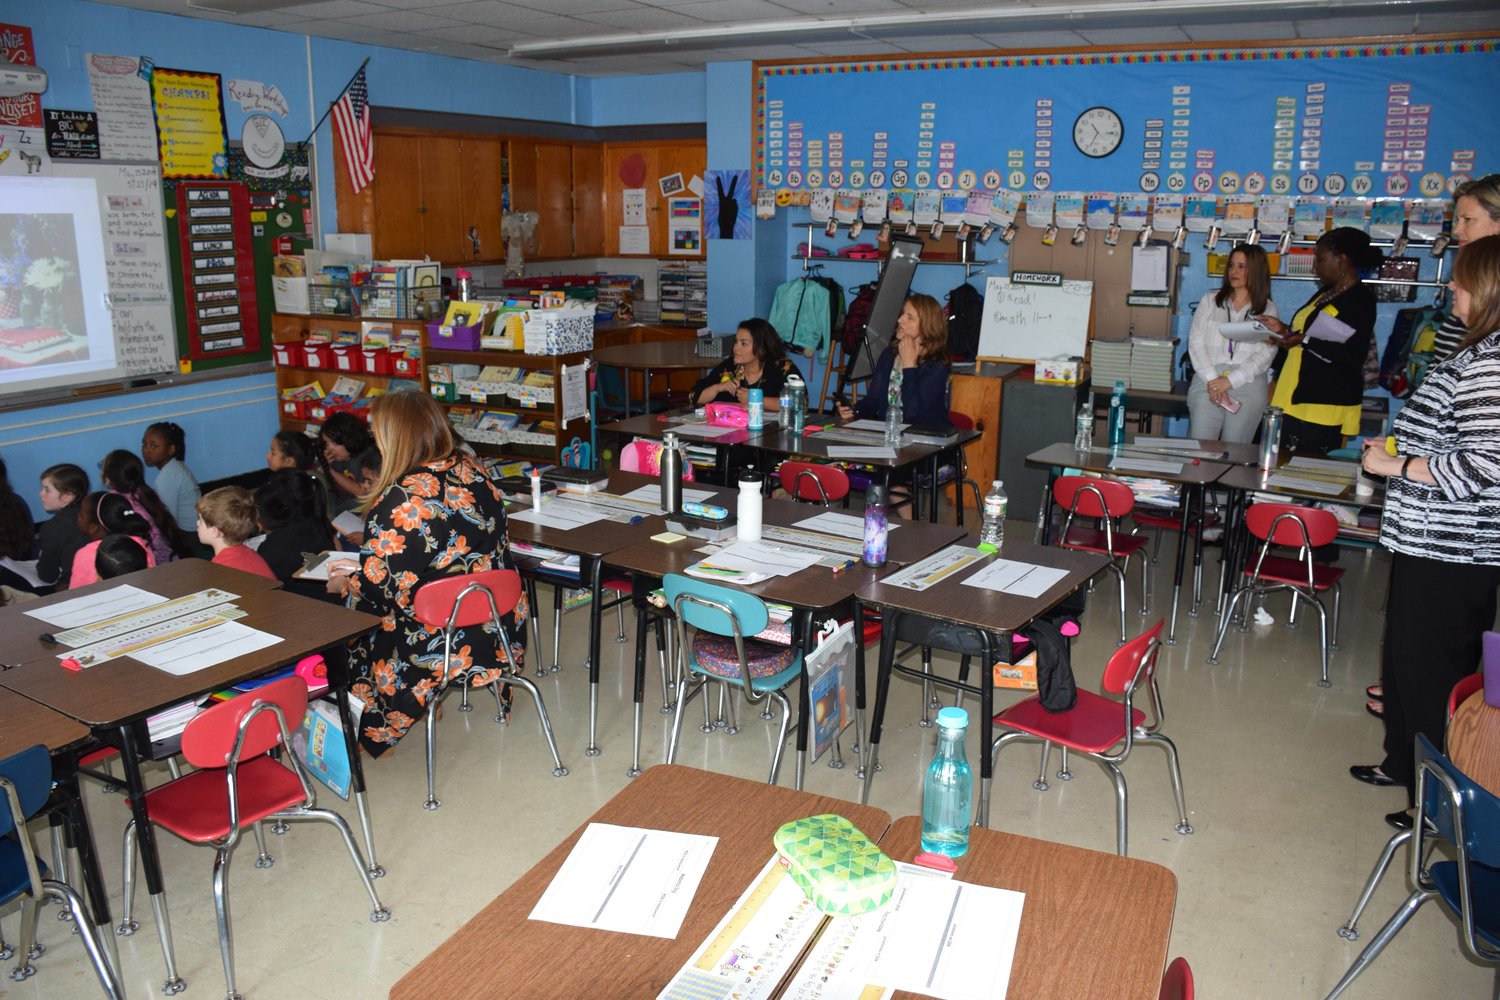 Educators from North Carolina's Wake County Schools observed a co-teaching second grade class at Cornwell Avenue School.